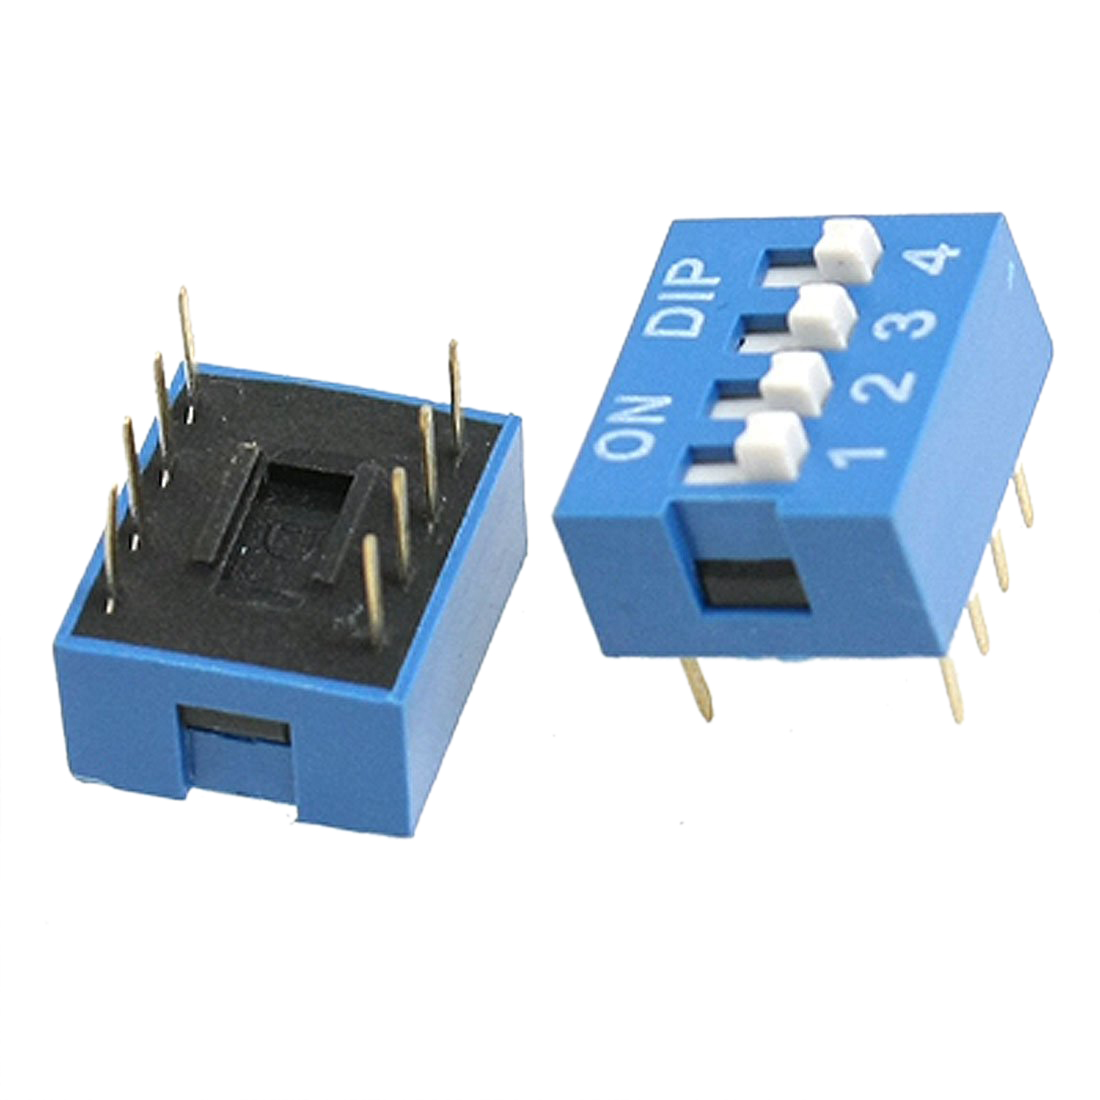 THGS 10 Pcs 2 Row 8 Pin 4P Positions 2.54mm Pitch DIP Switch Blue